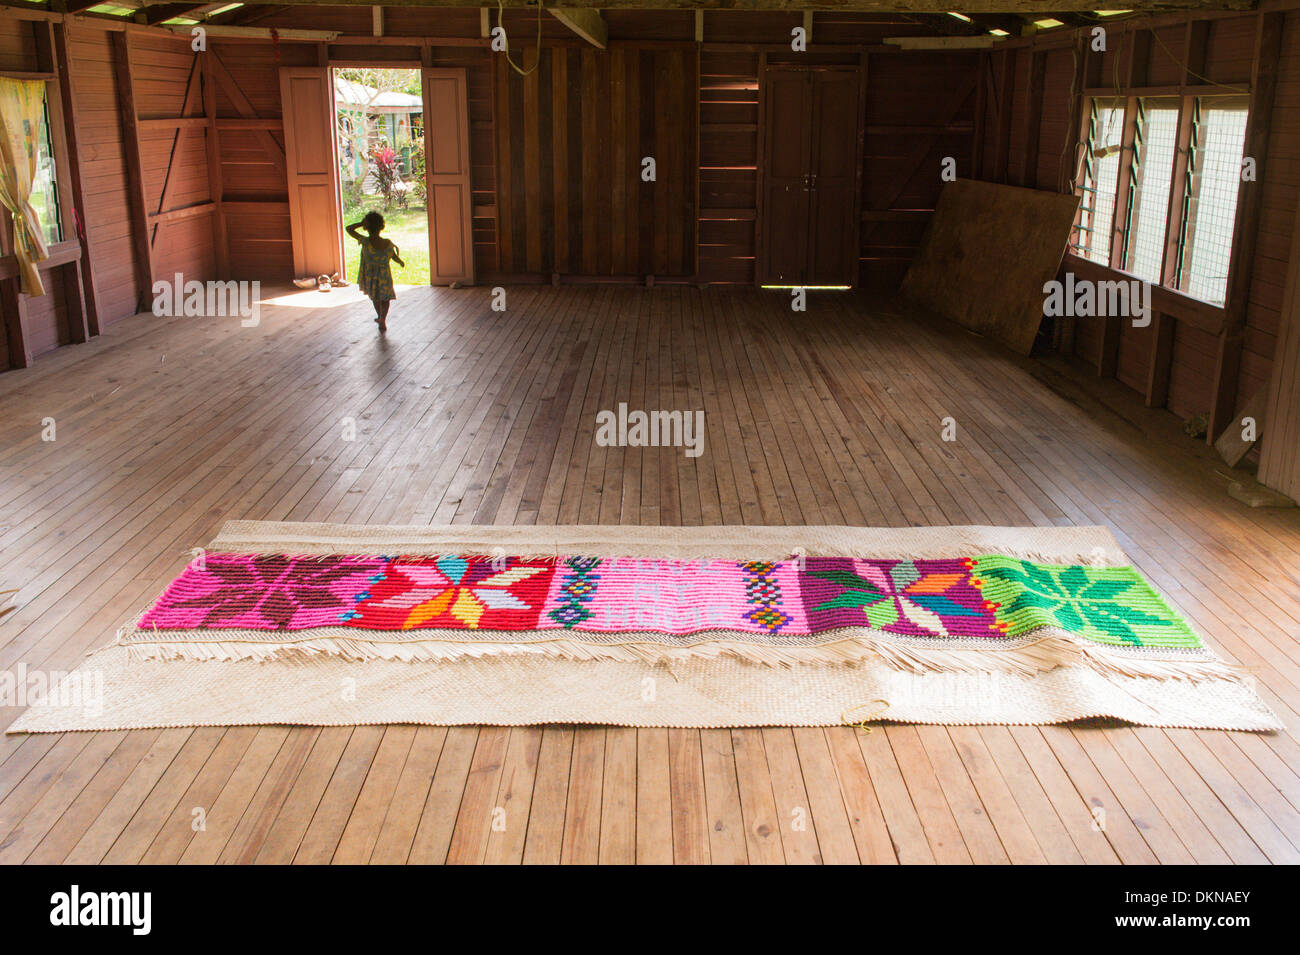 A pandanus and wool mat woven by women as a wedding present on the floor of the community hall, Lomati village, tropical island of Matuku,  Fiji. - Stock Image